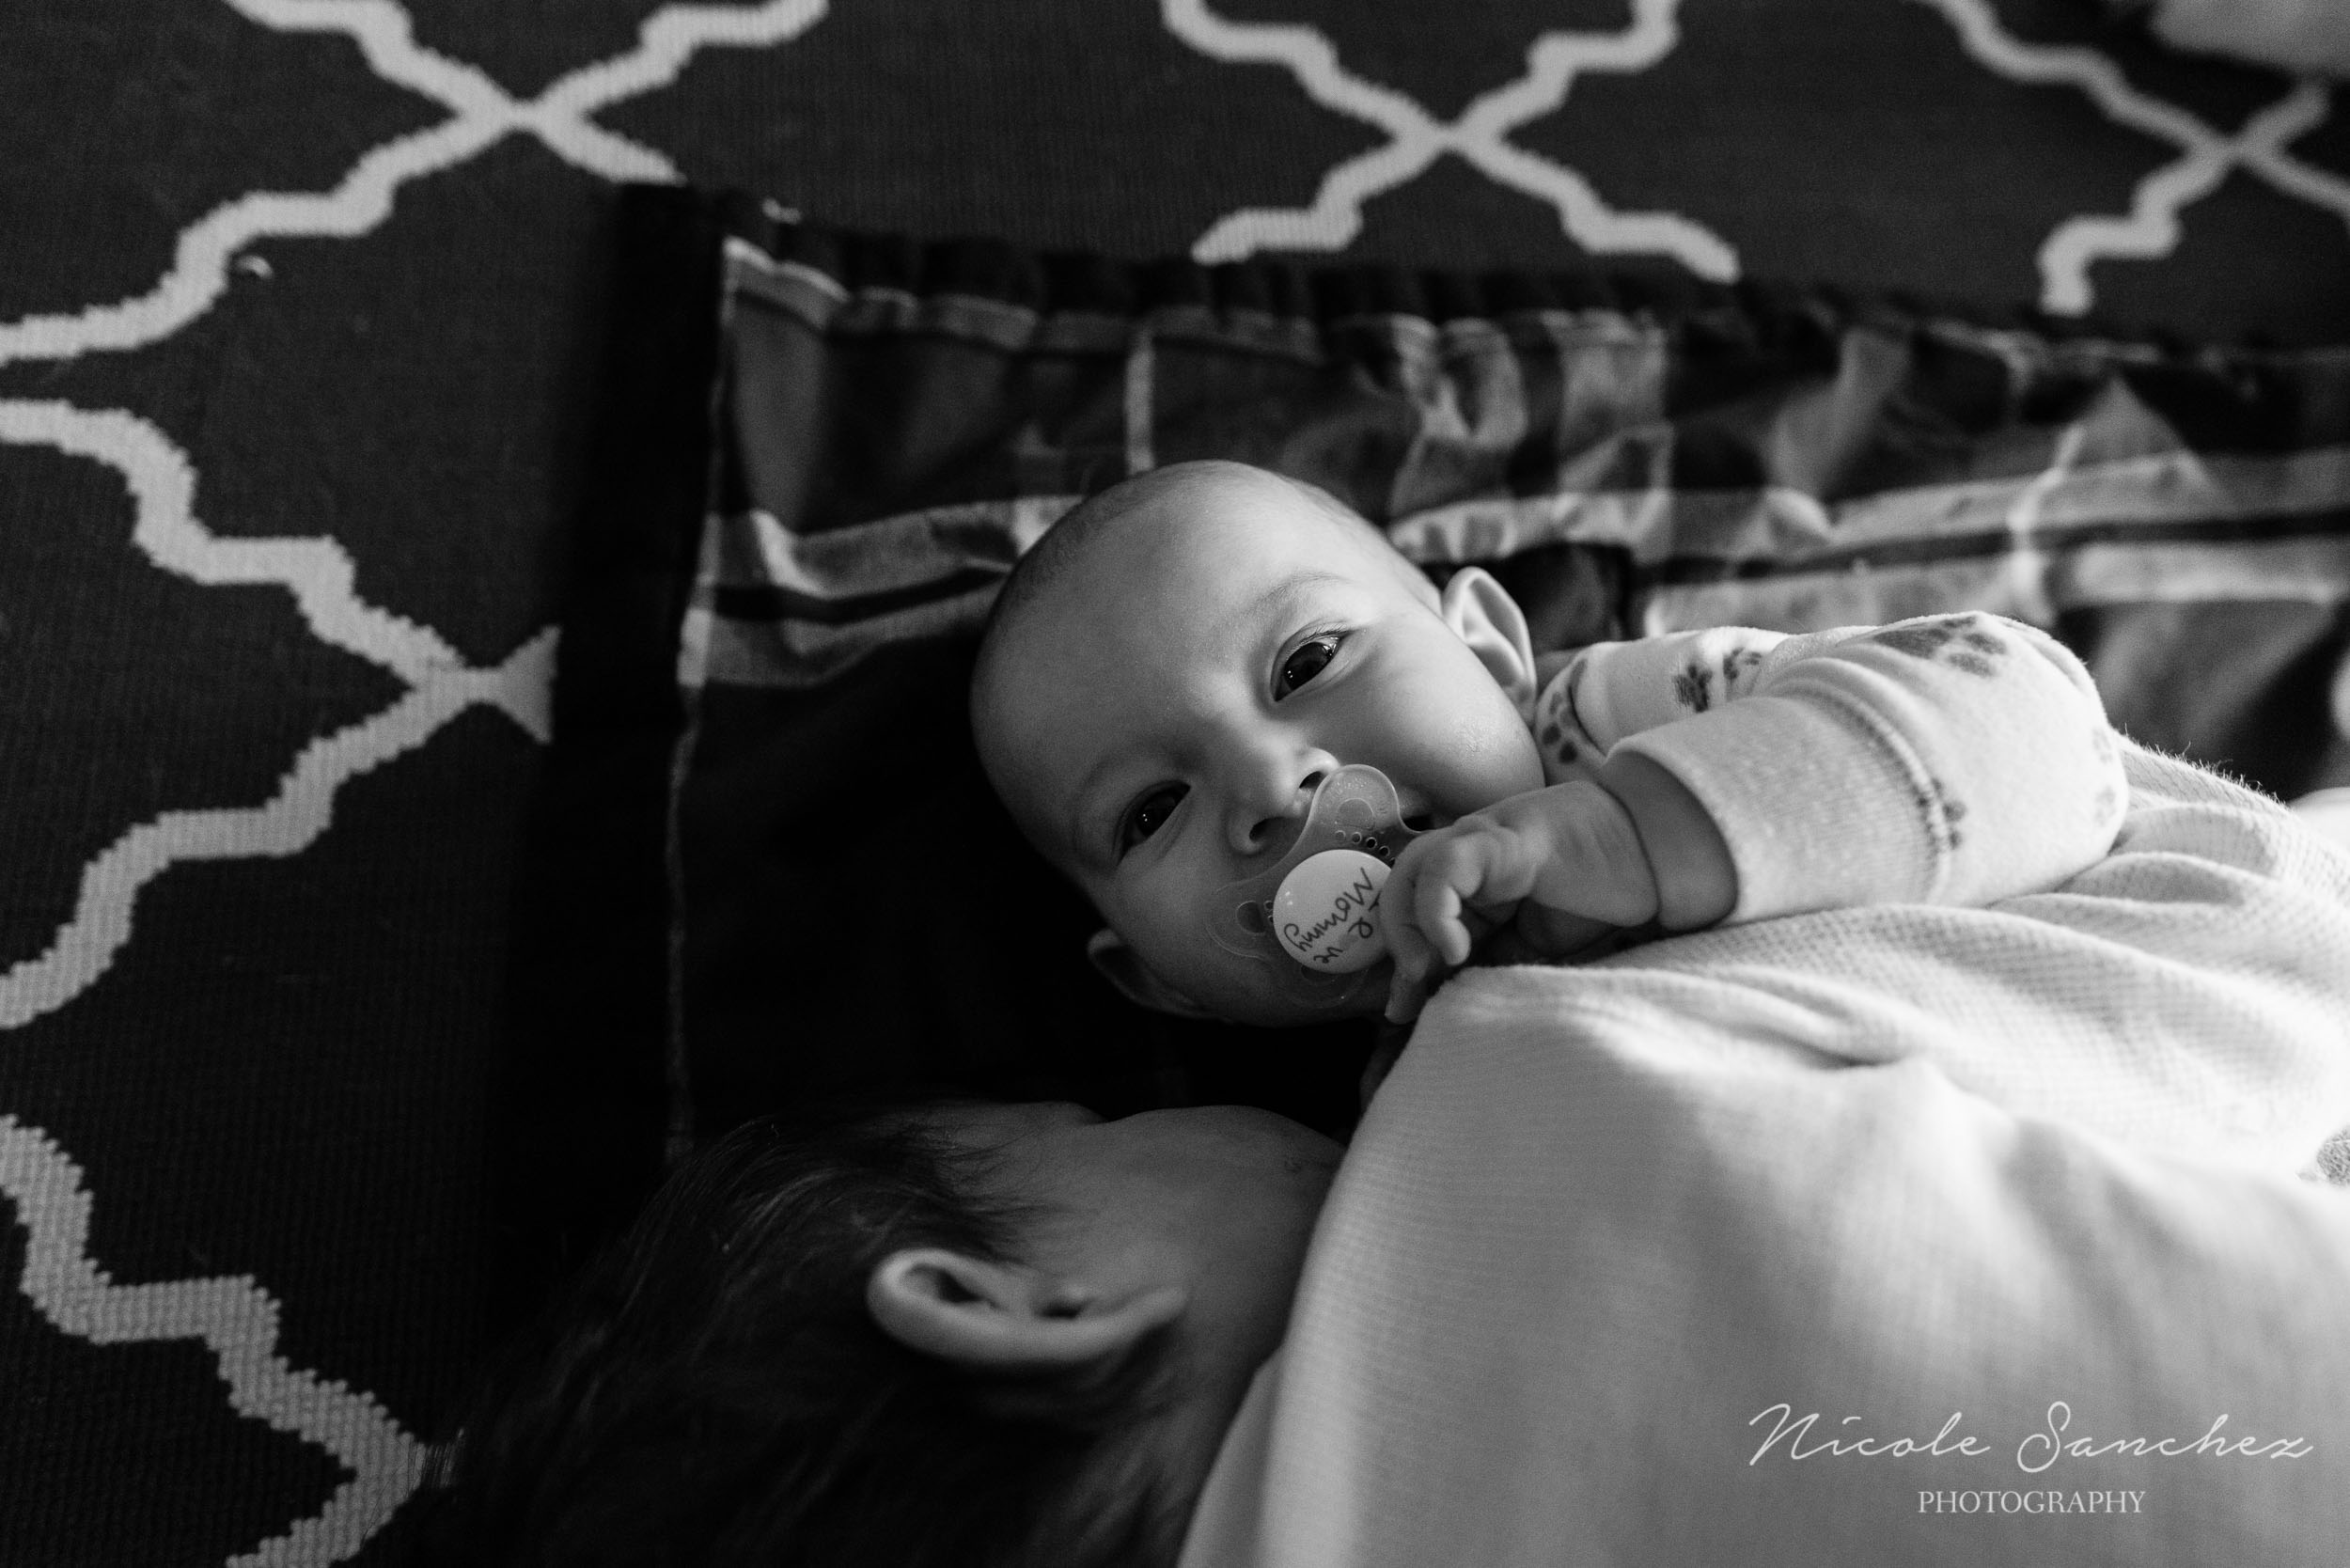 Baby boy smiling with pacifier in mouth by Northern Virginia Lifestyle Photographer Nicole Sanchez